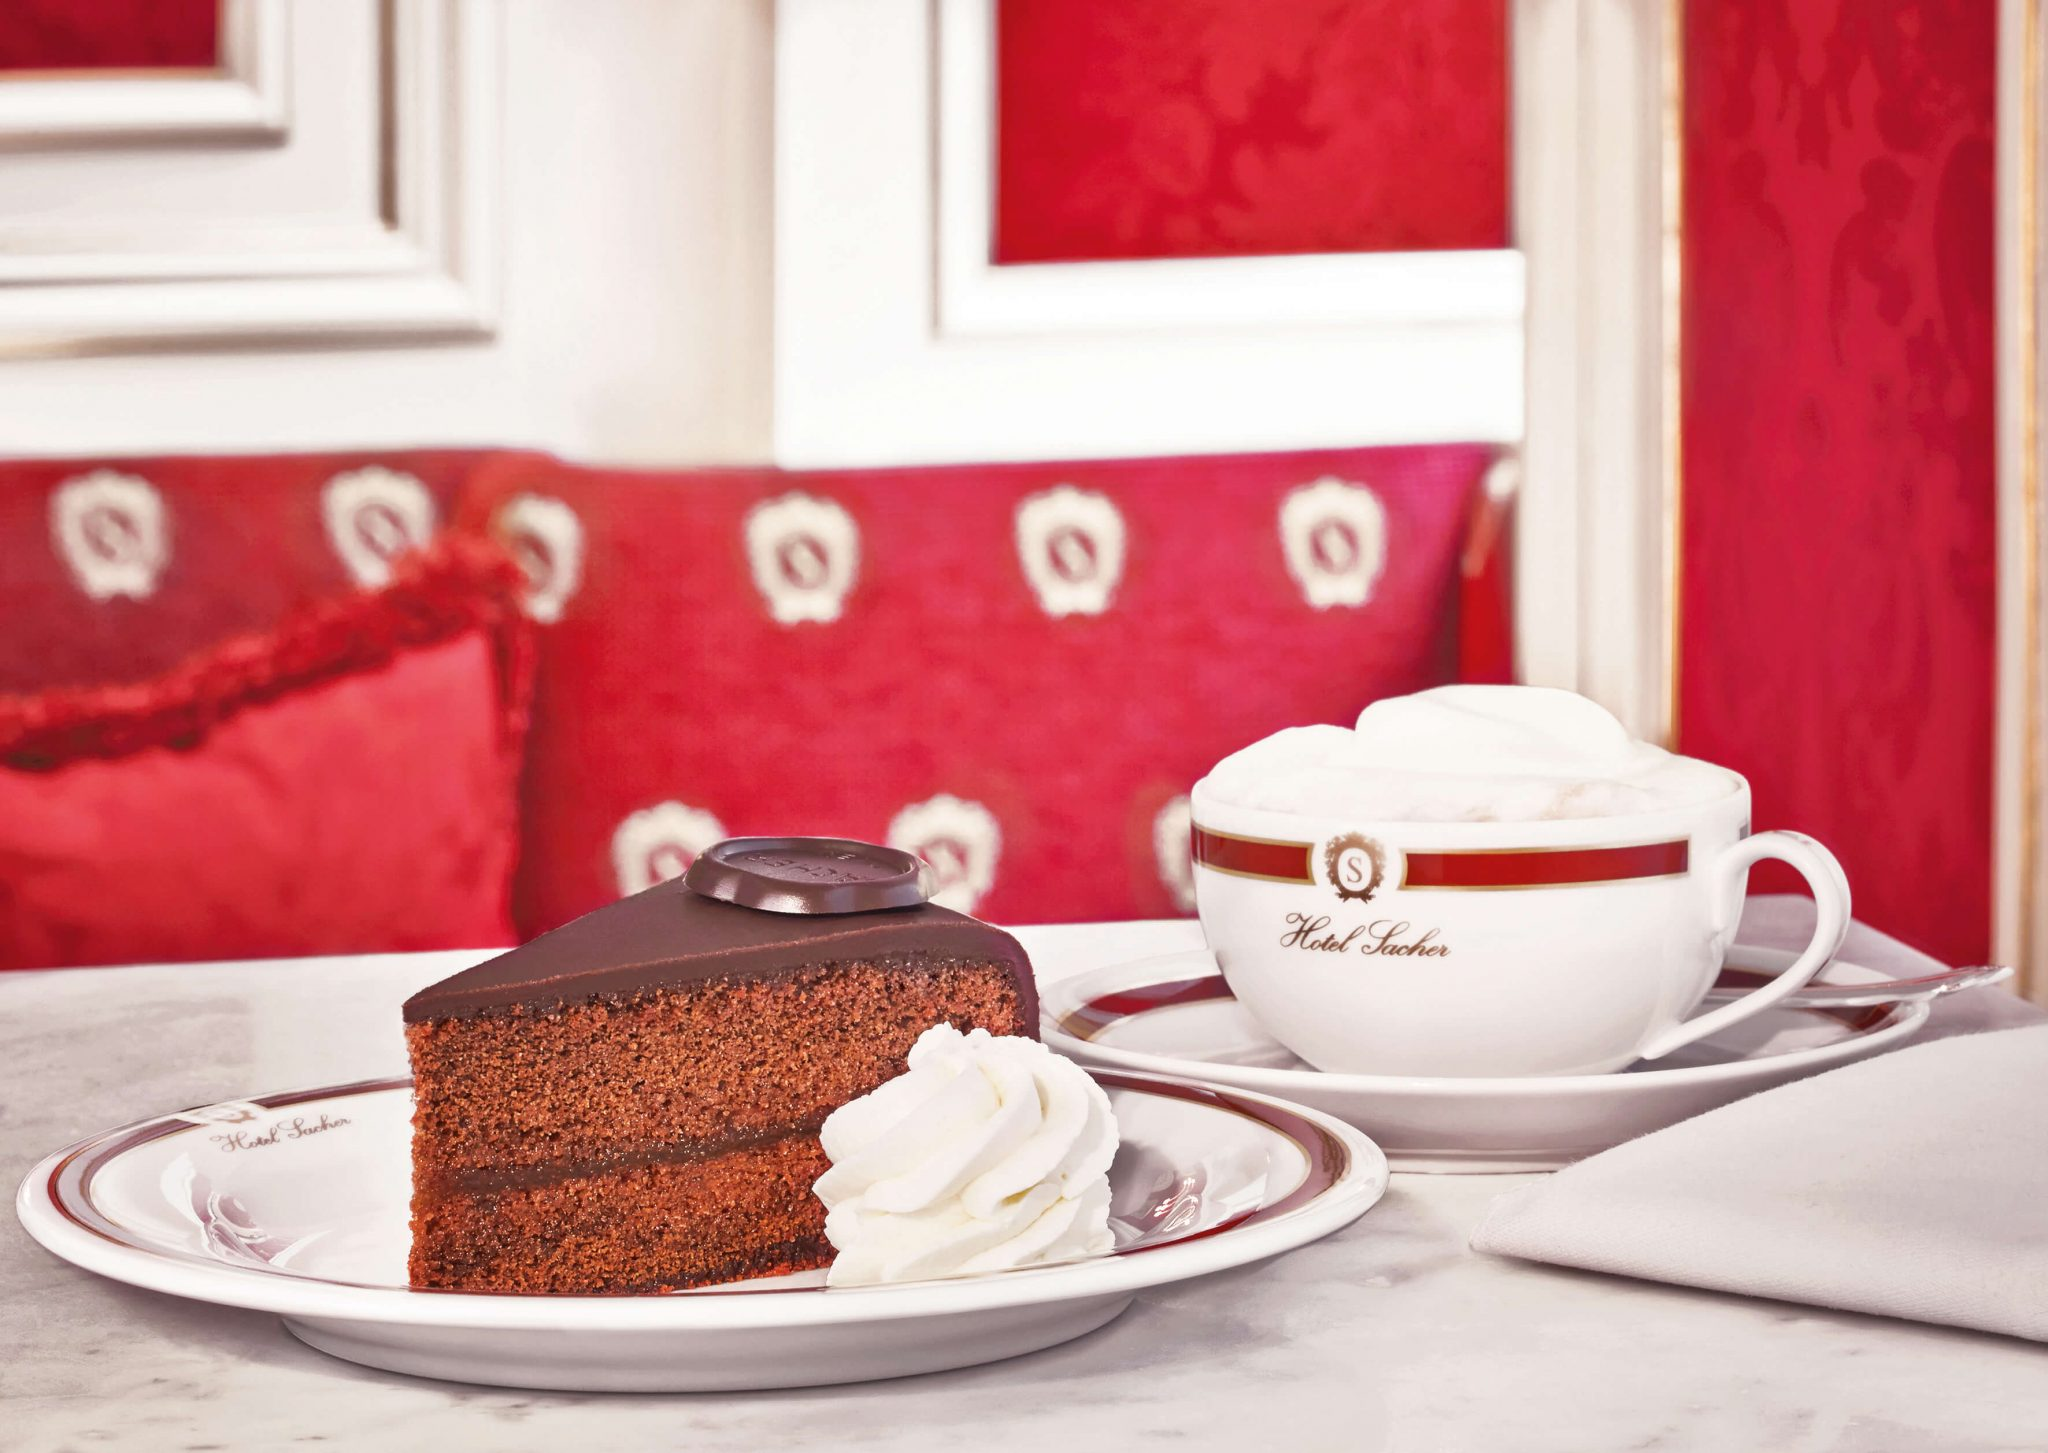 Sachertorte at Hotel Sacher Vienna - Best cakes in Europe - photo ©Cafe Sacher